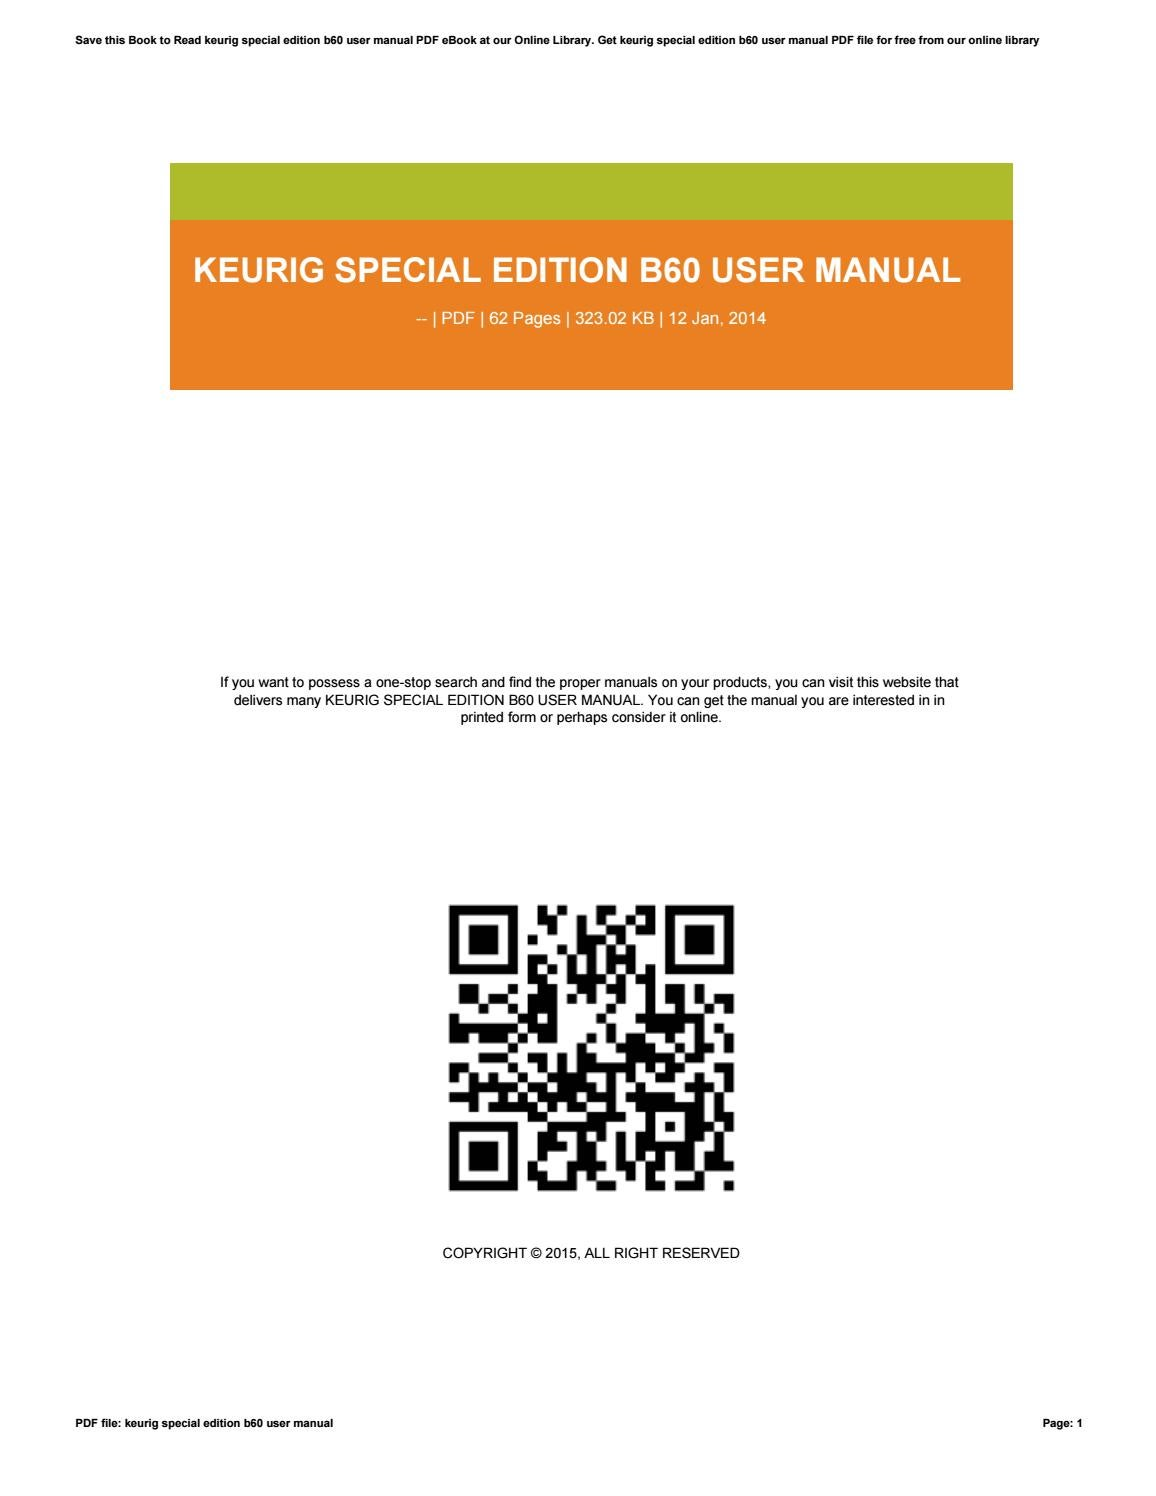 Keurig B60 Special Edition Owners Manual